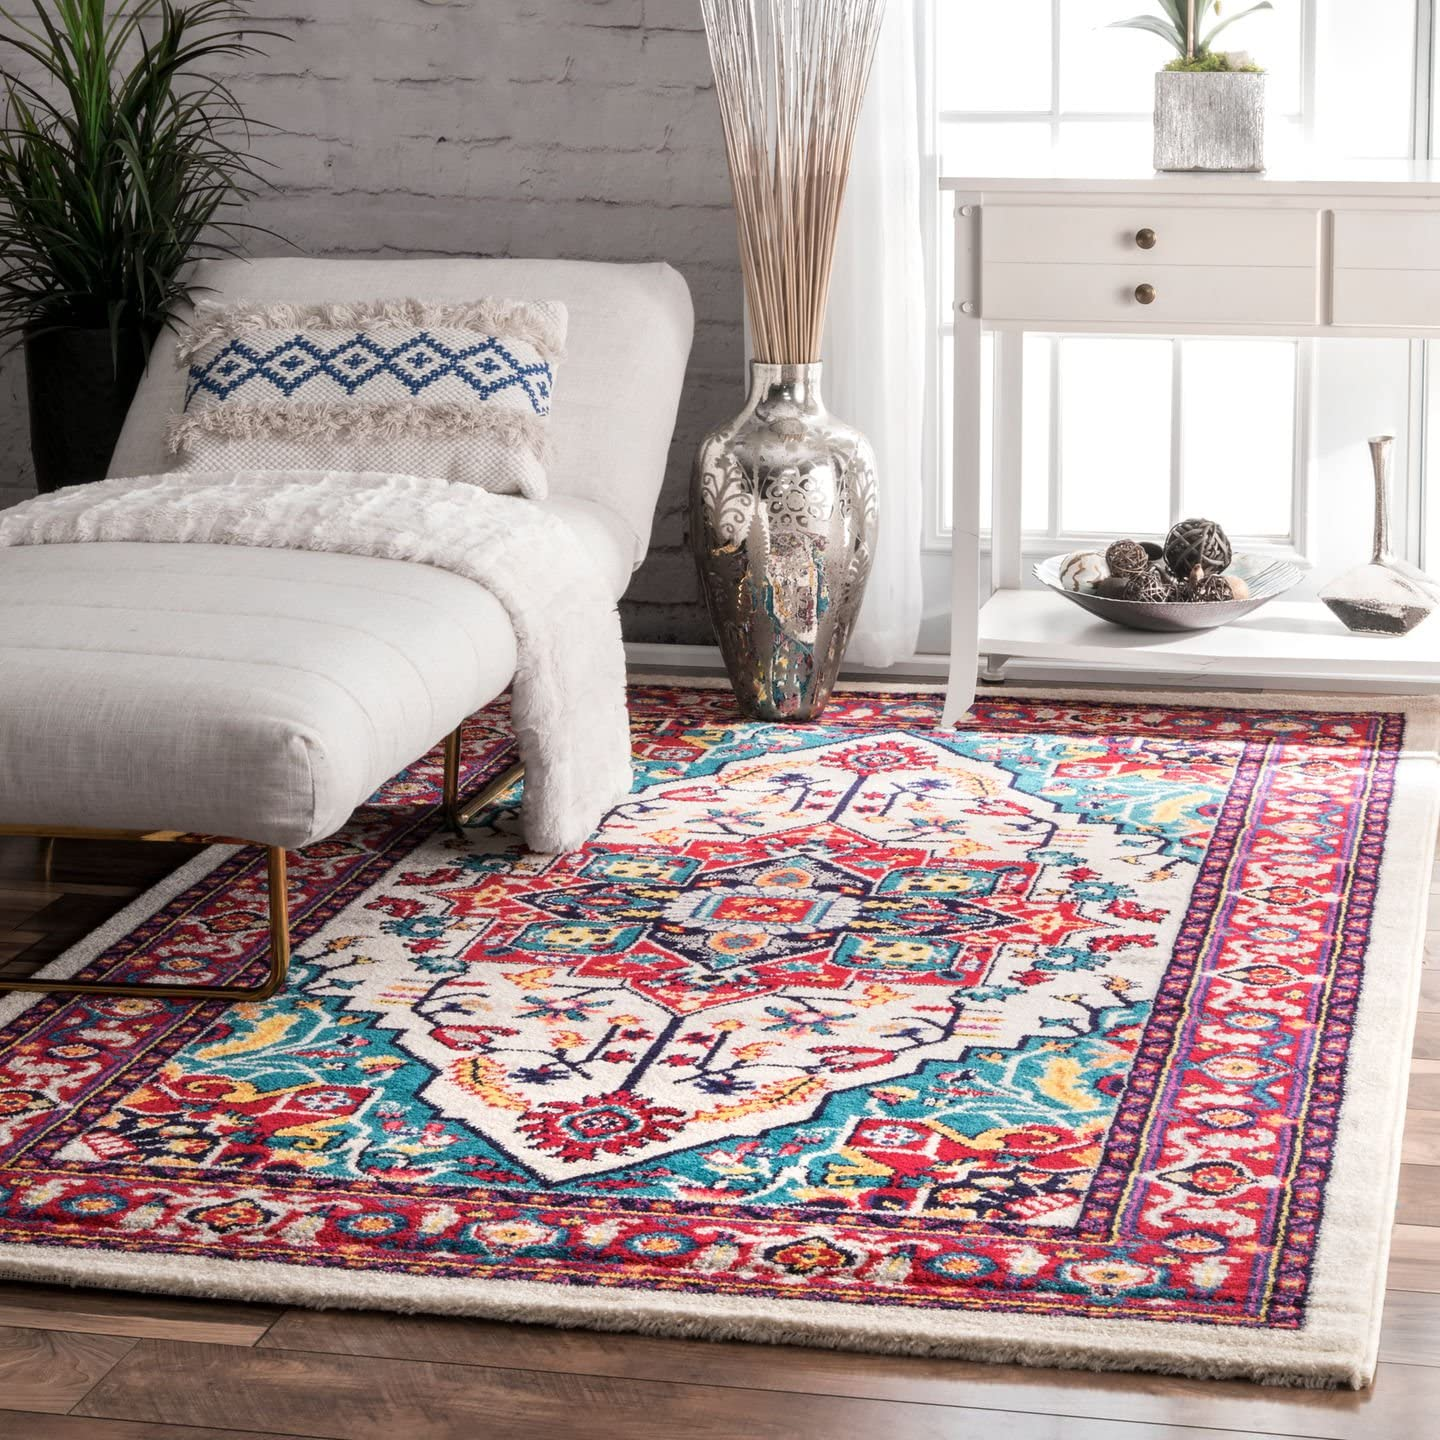 nuLOOM Elenor Persian Floral Area Rug, 5 x 8 , Multi